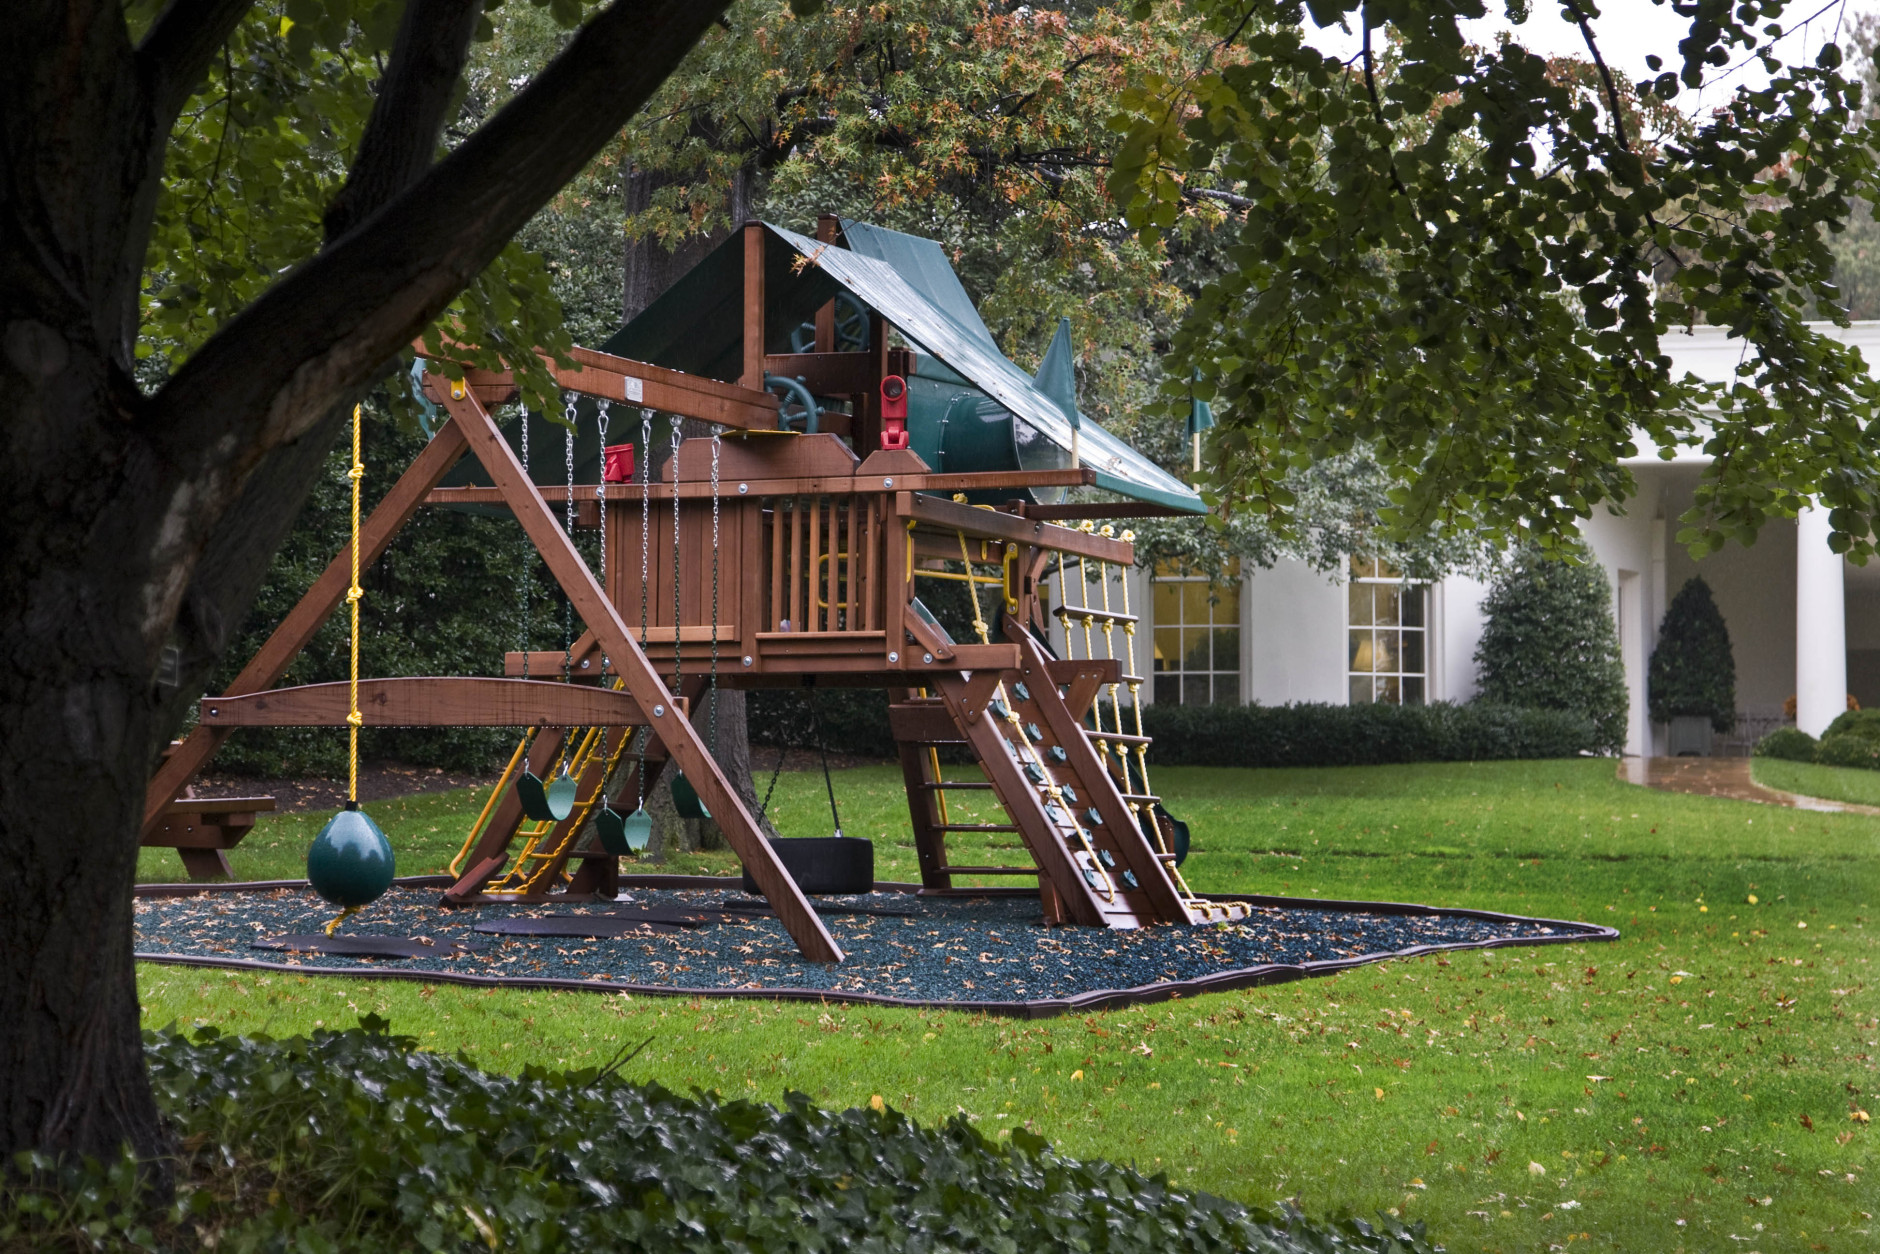 The swing set, installed for the children of President Barack Obama, Malia and Sasha, is seen with the Oval Office behind it at the White House in Washington Thursday, Oct. 15, 2009. The White House gardens will be open to the public for rare tours this weekend.  (AP Photo/Alex Brandon)